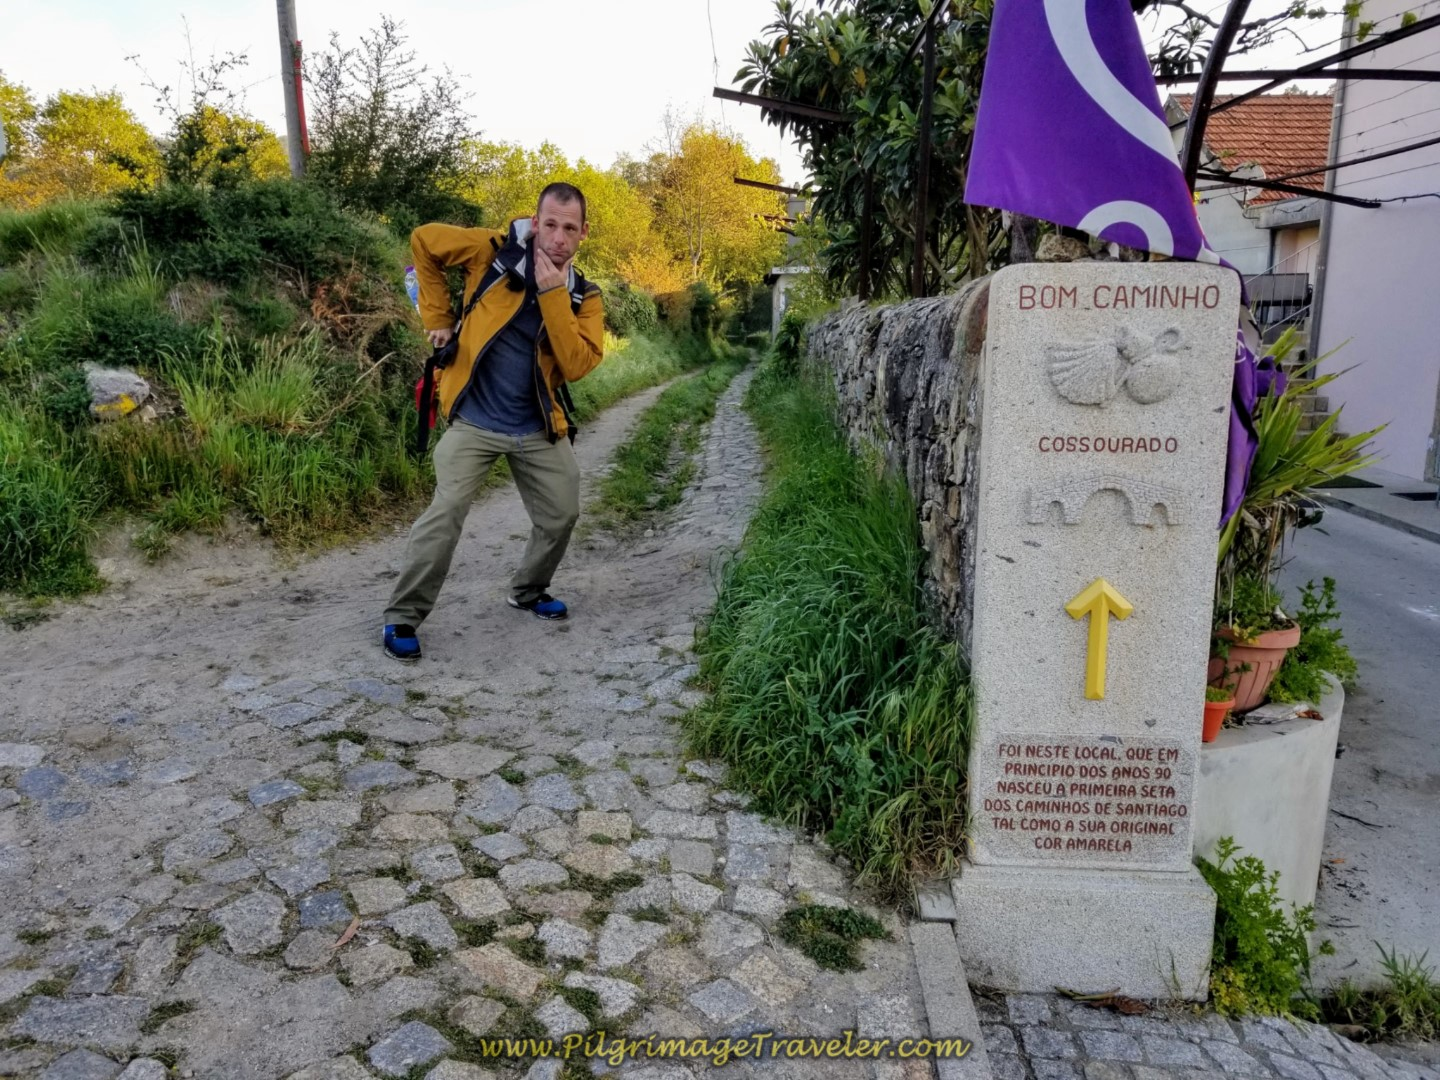 Matt at the Waymark to Cossourado on day nineteen on the Central Route of the Portuguese Camino